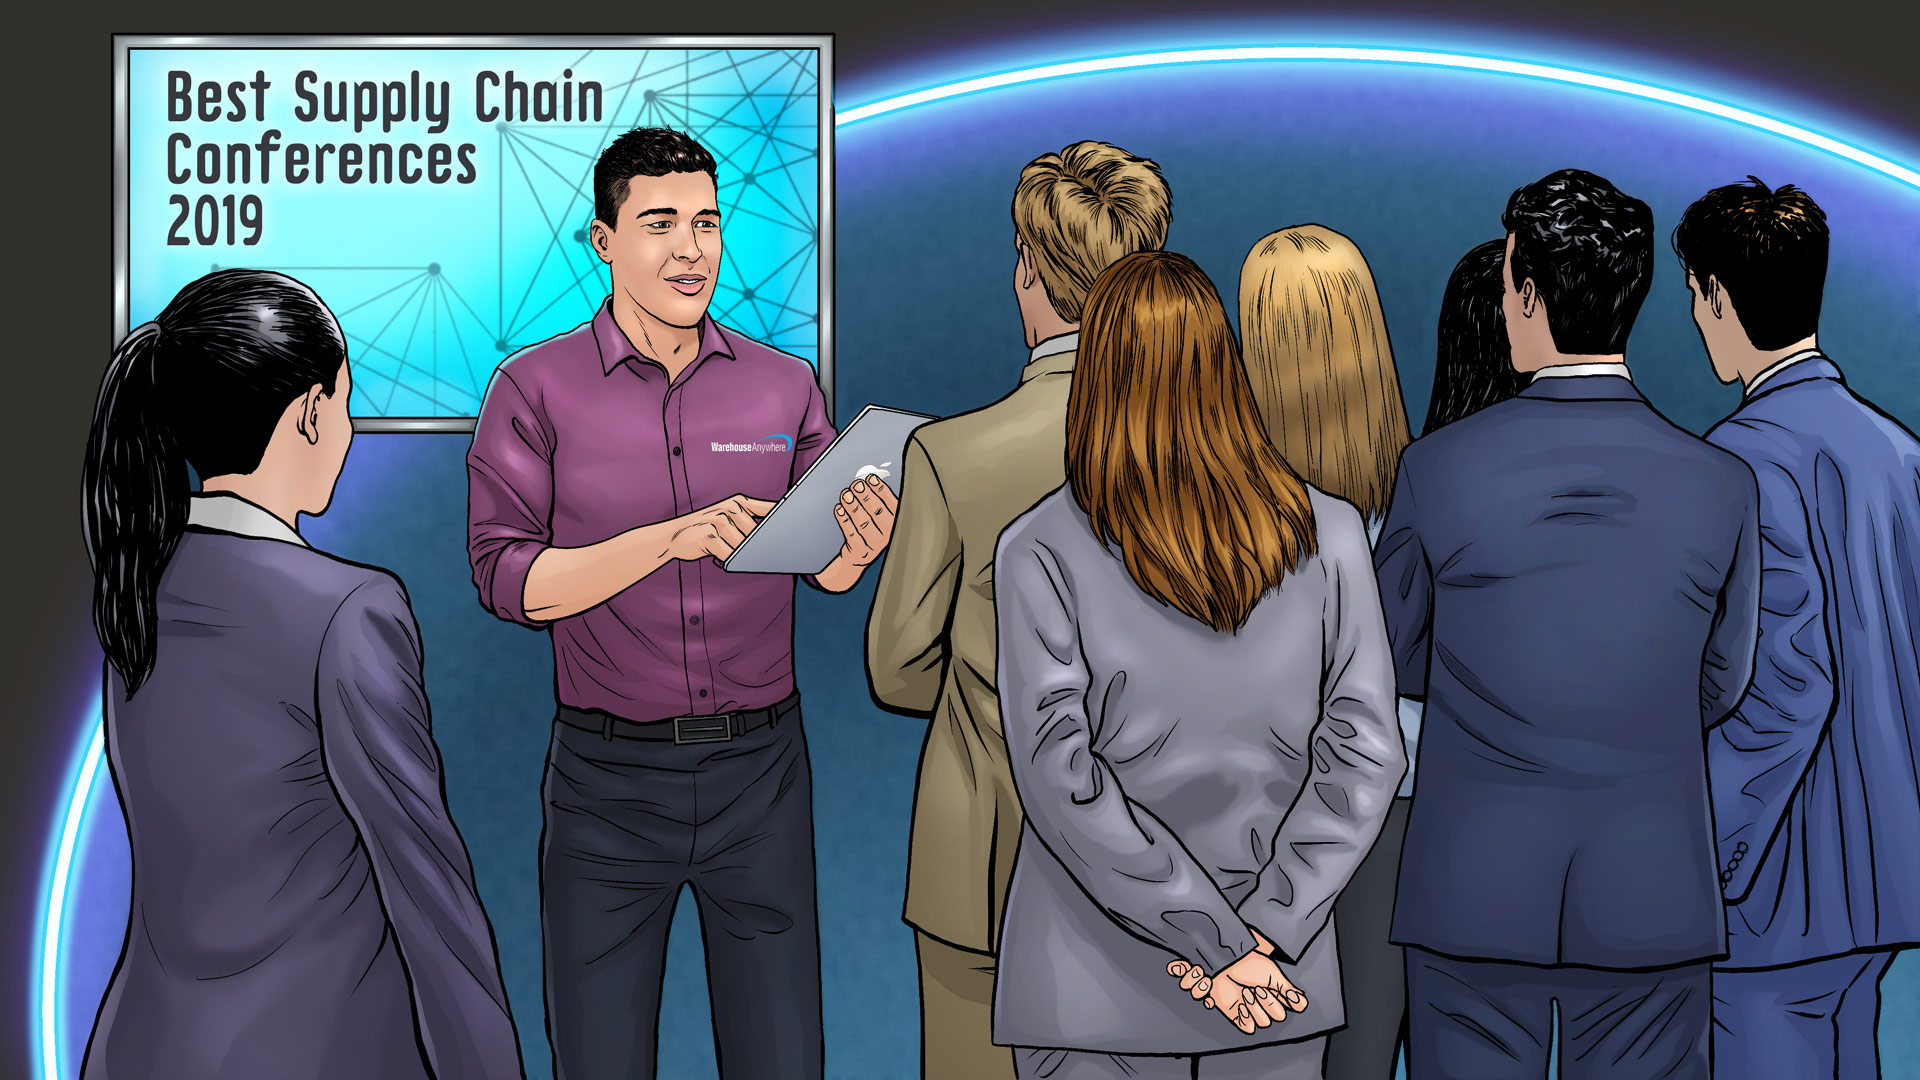 Best Supply Chain Conferences 2019